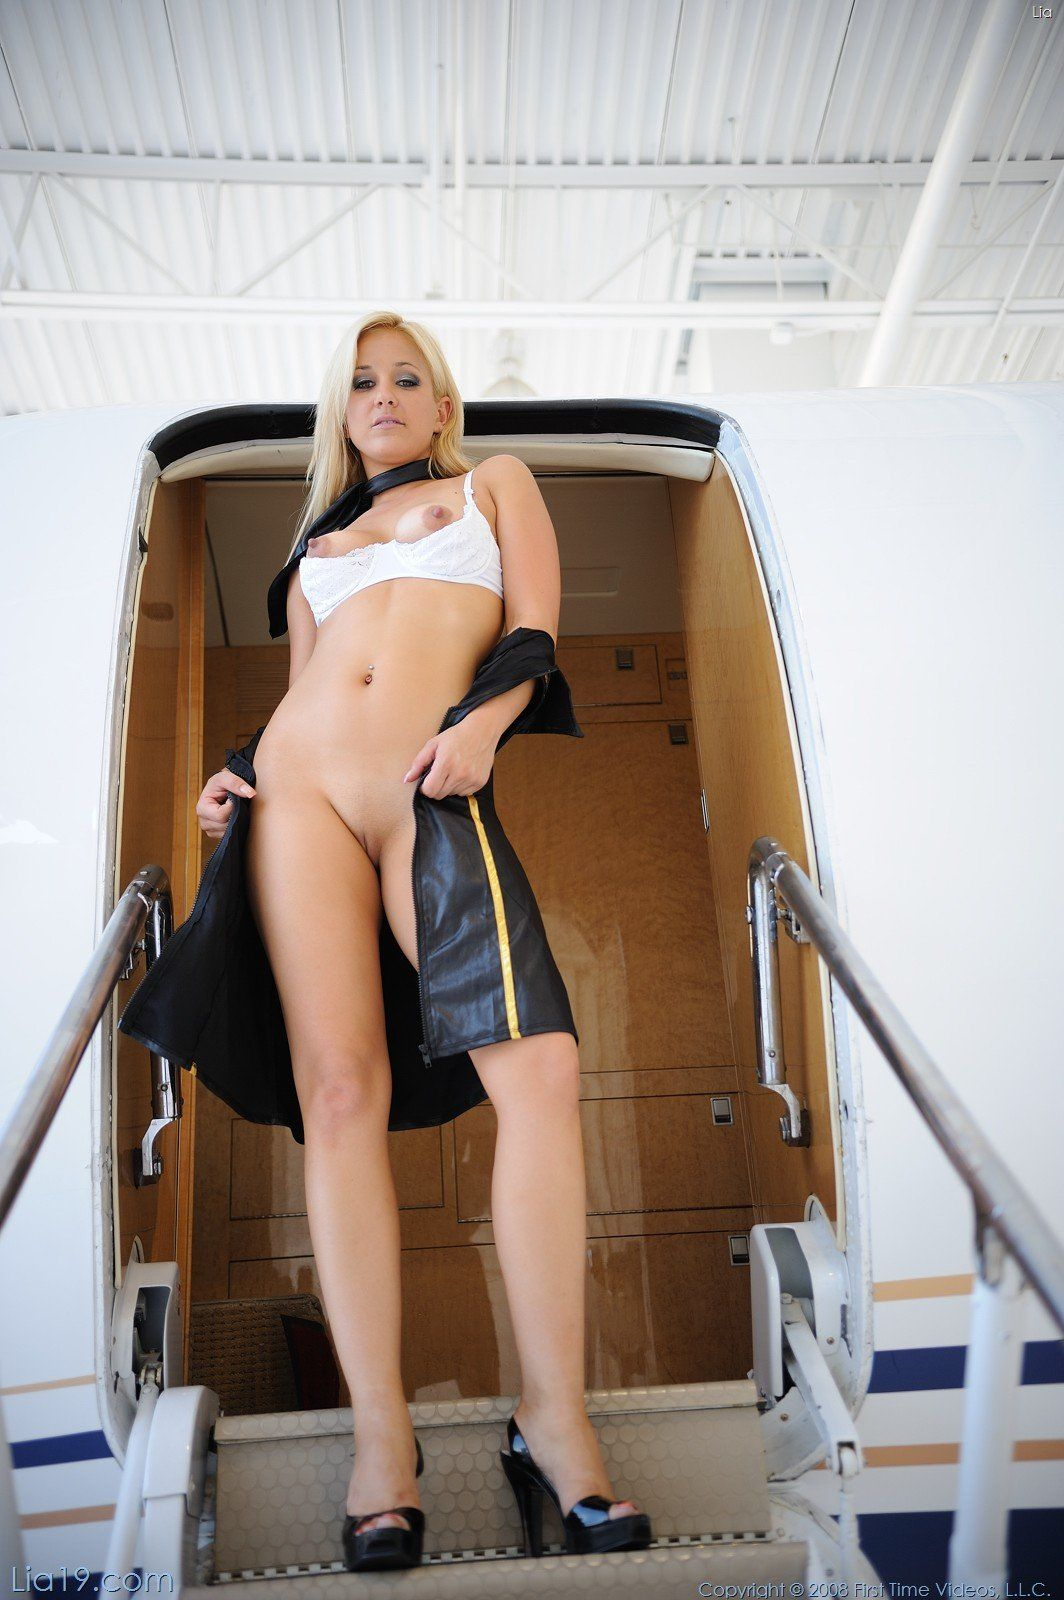 Sex of air hostess picture gallery